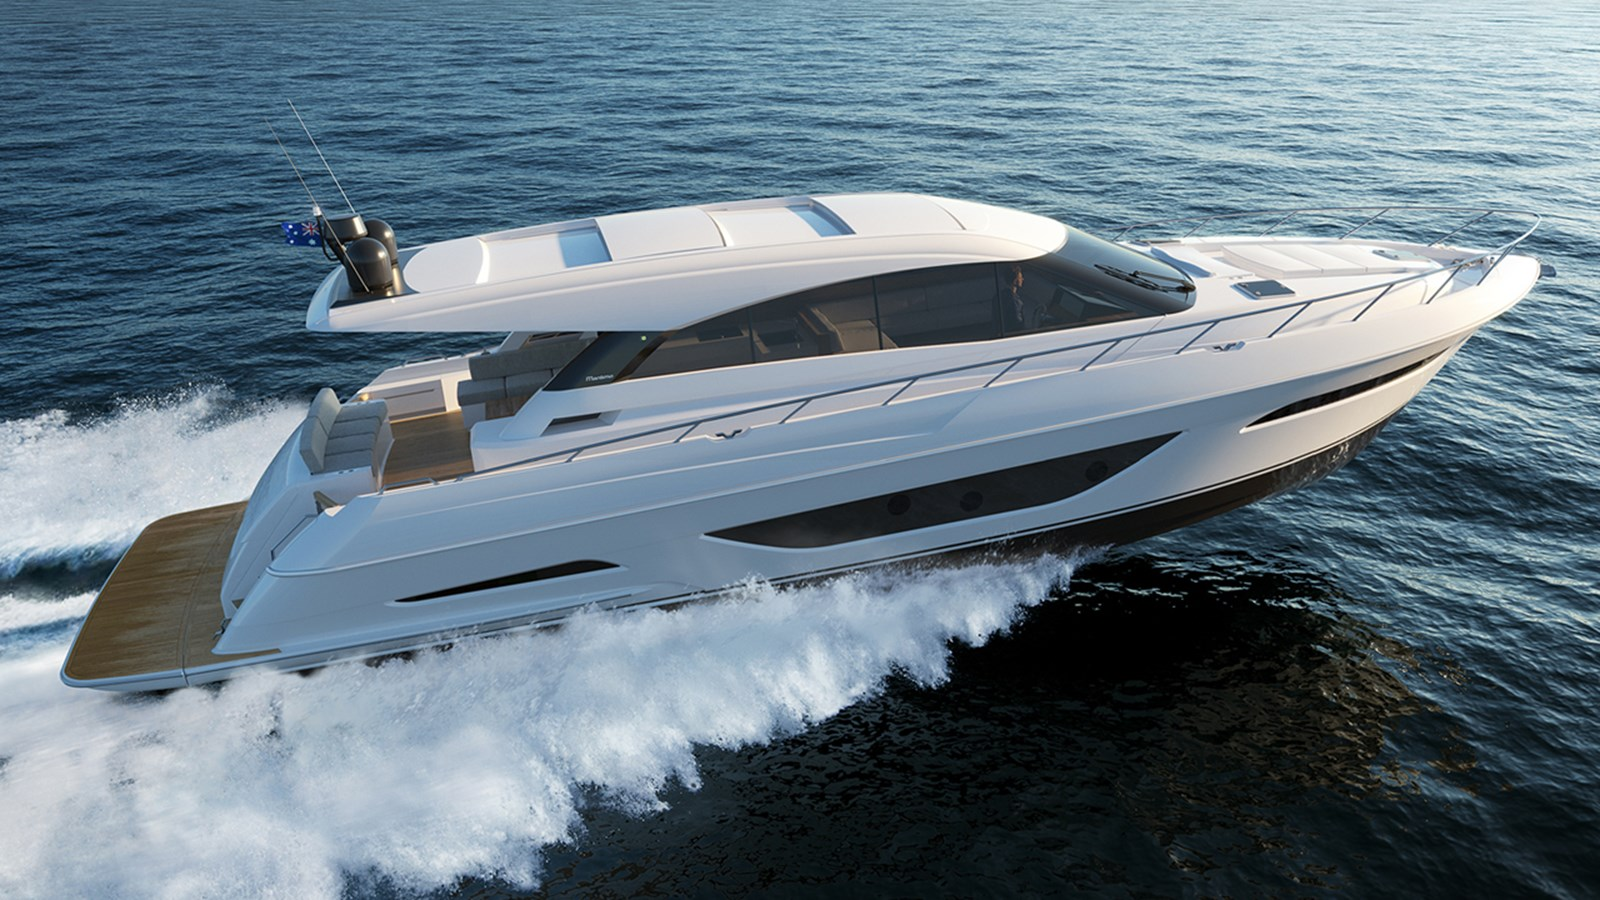 New Maritimo X60 Motor Yacht Yachts For Sale